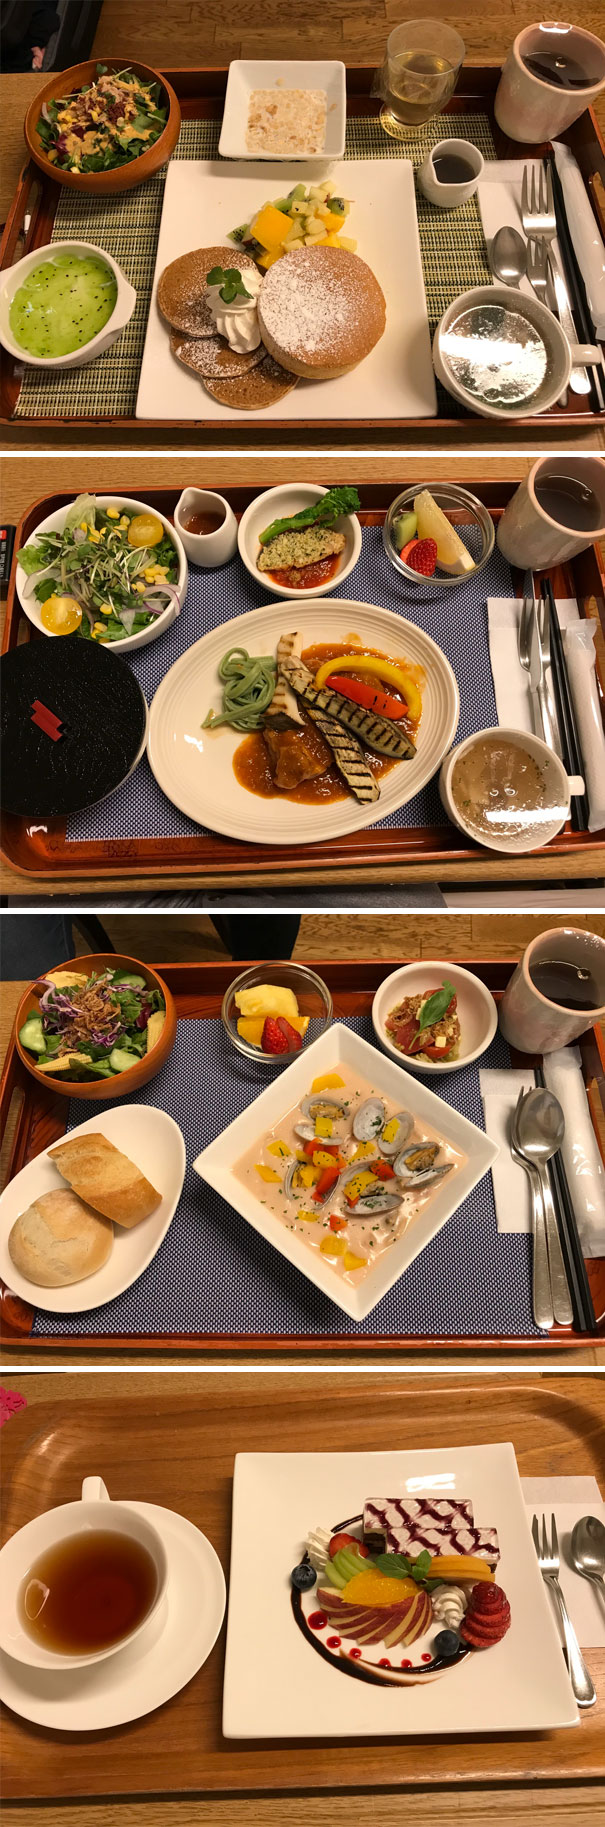 I Recently Gave Birth In Japan. Here Is Some Of The Hospital Food I Ate